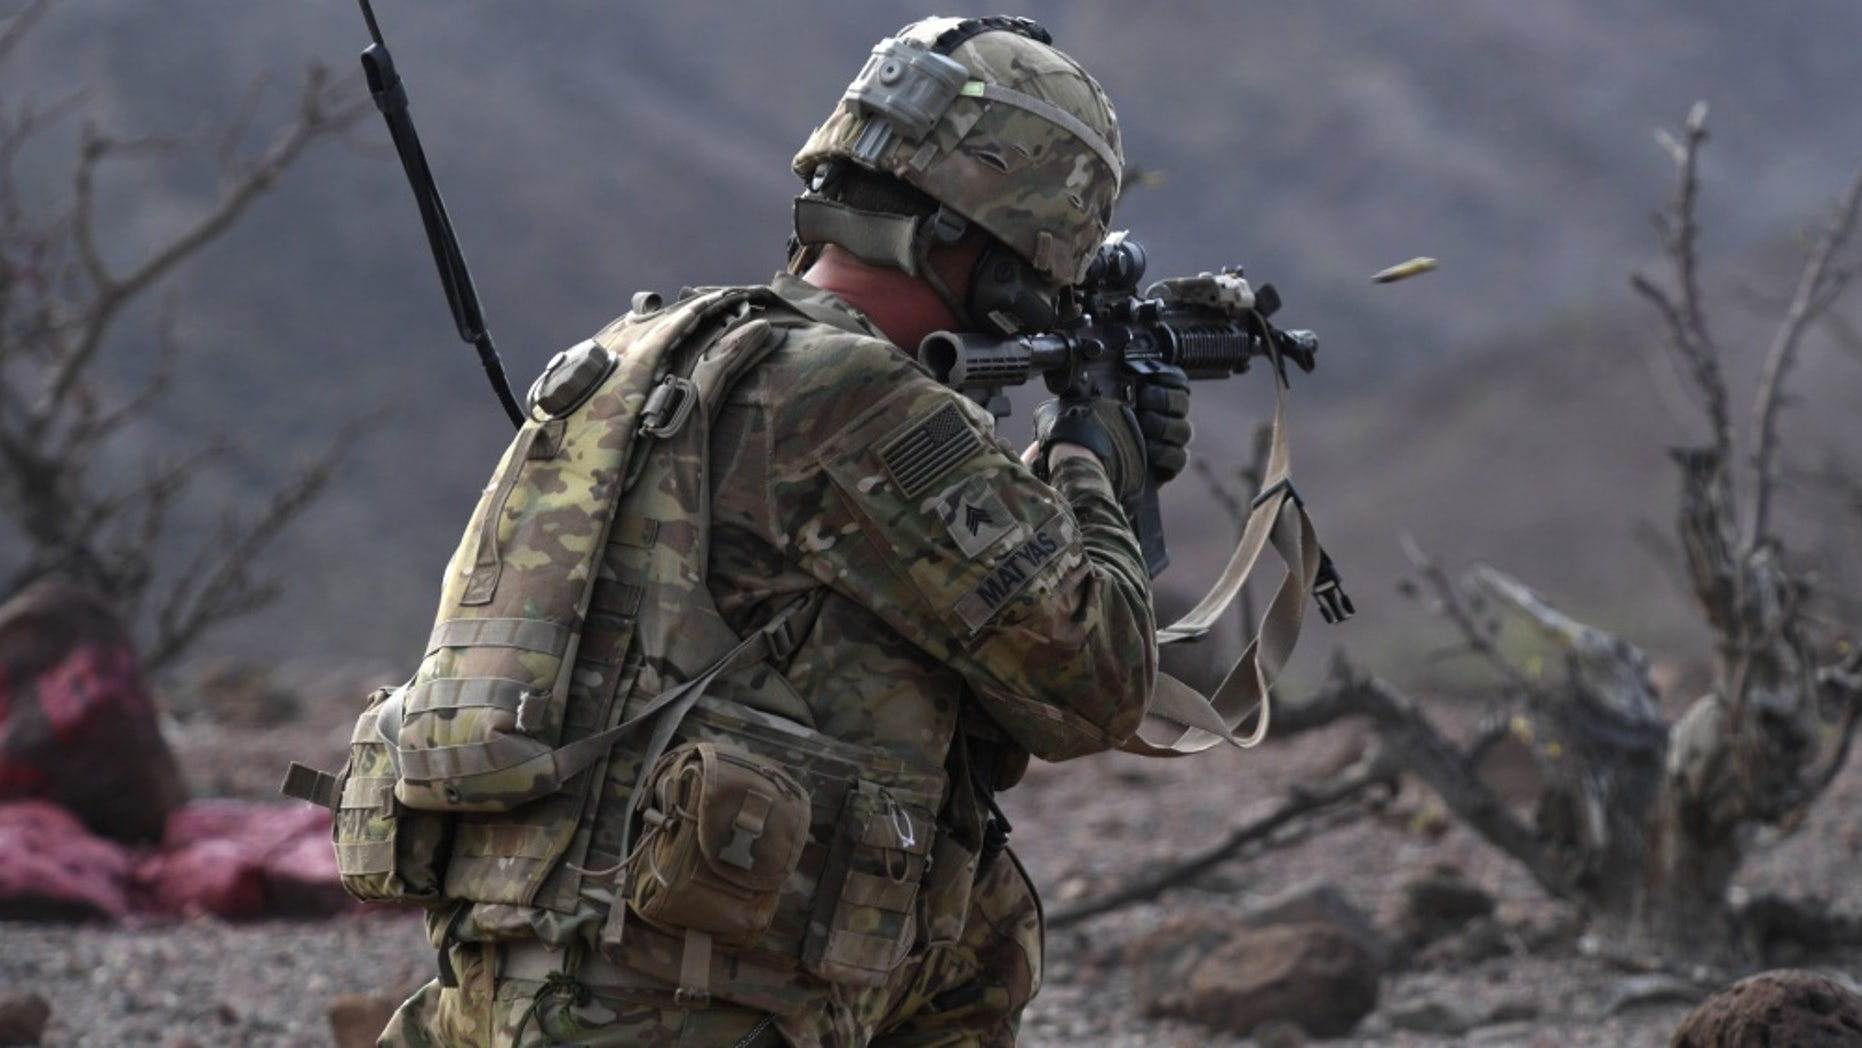 File photo - A 10th Mountain Division Soldier fires an M4 rifle during a platoon Situational Training Exercise at a range in Arta, Djibouti, Aug. 25, 2018.